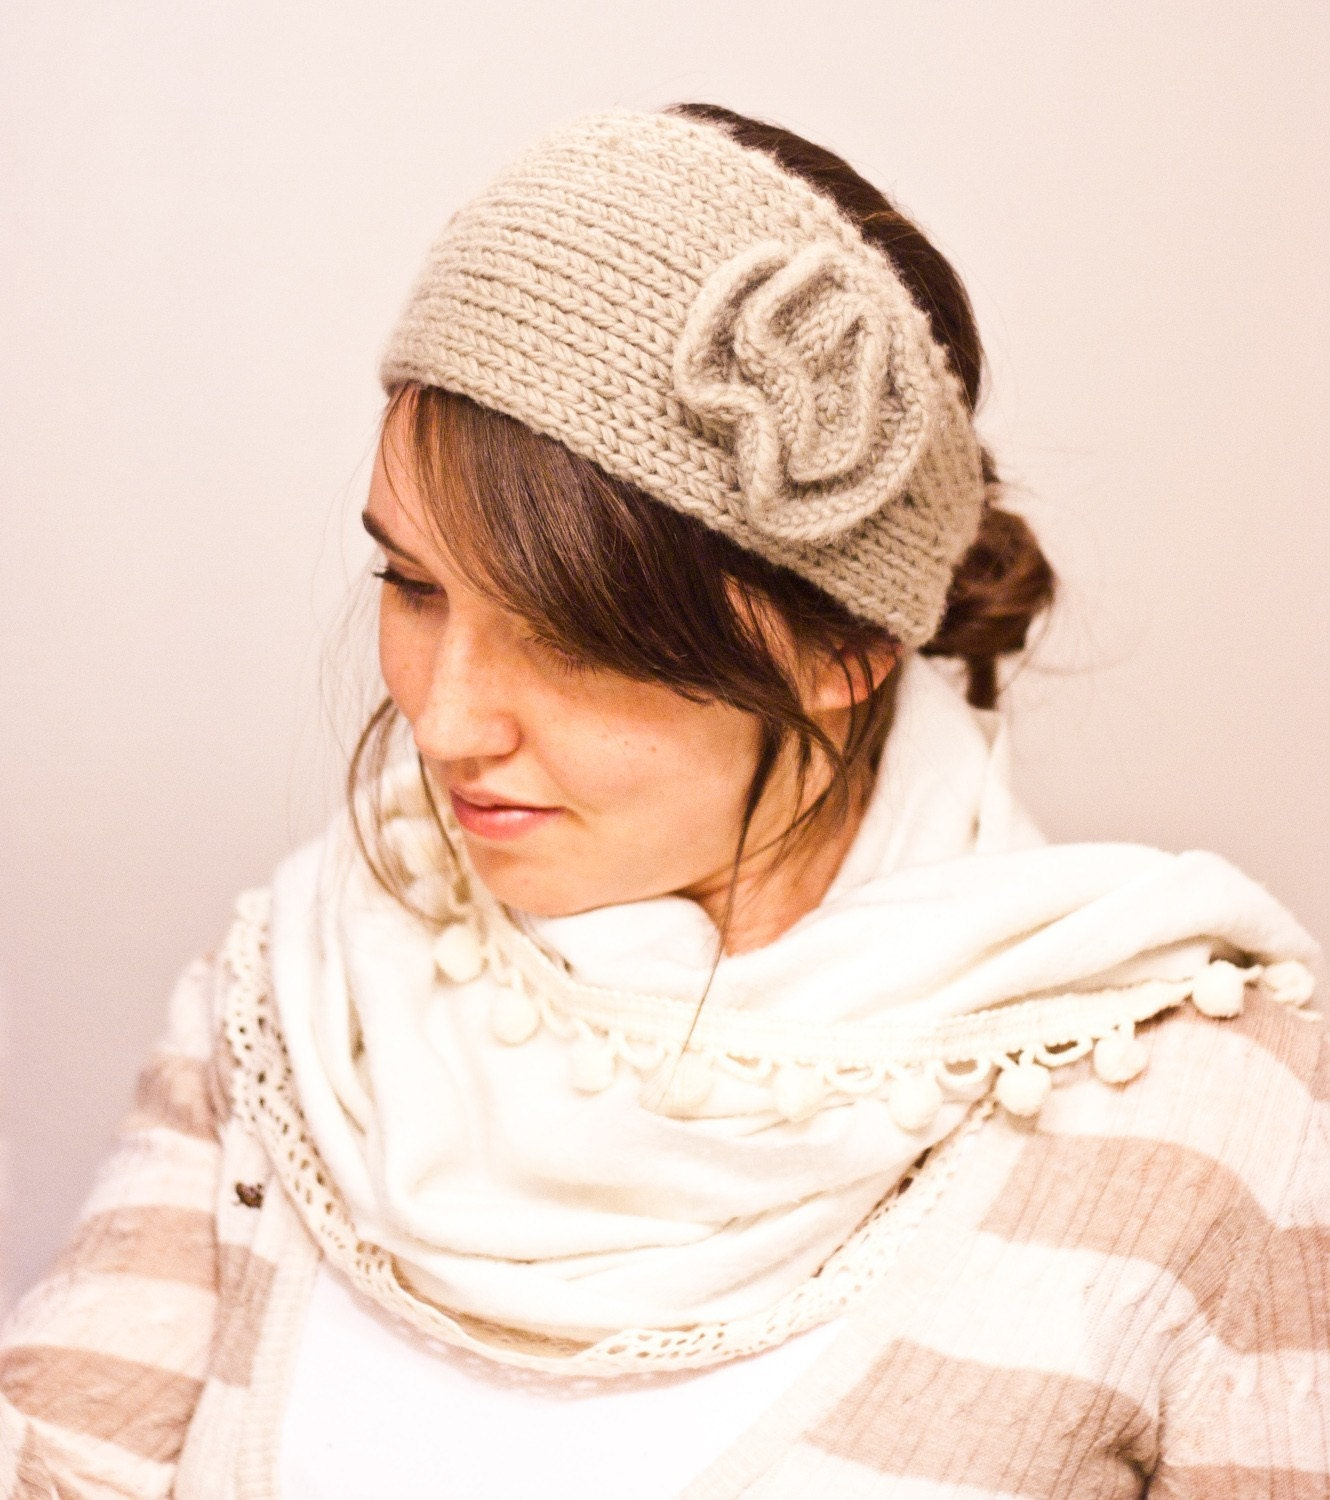 How to Knit a Headband Wiki: 7 steps (with pictures)